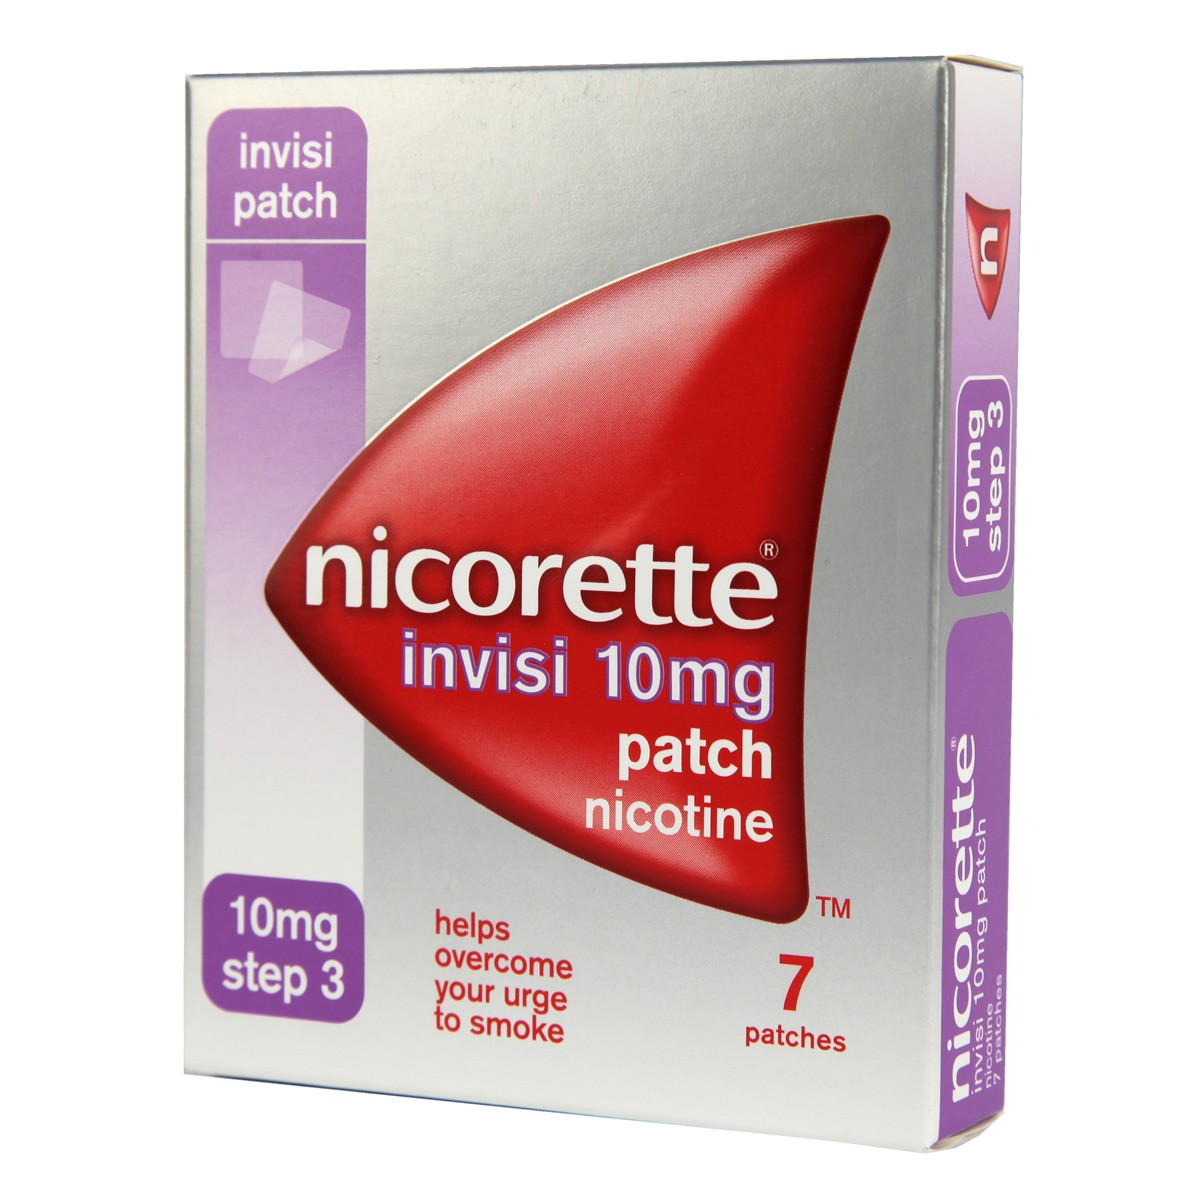 Nicorette Invisi Patch Step 3 - 10mg